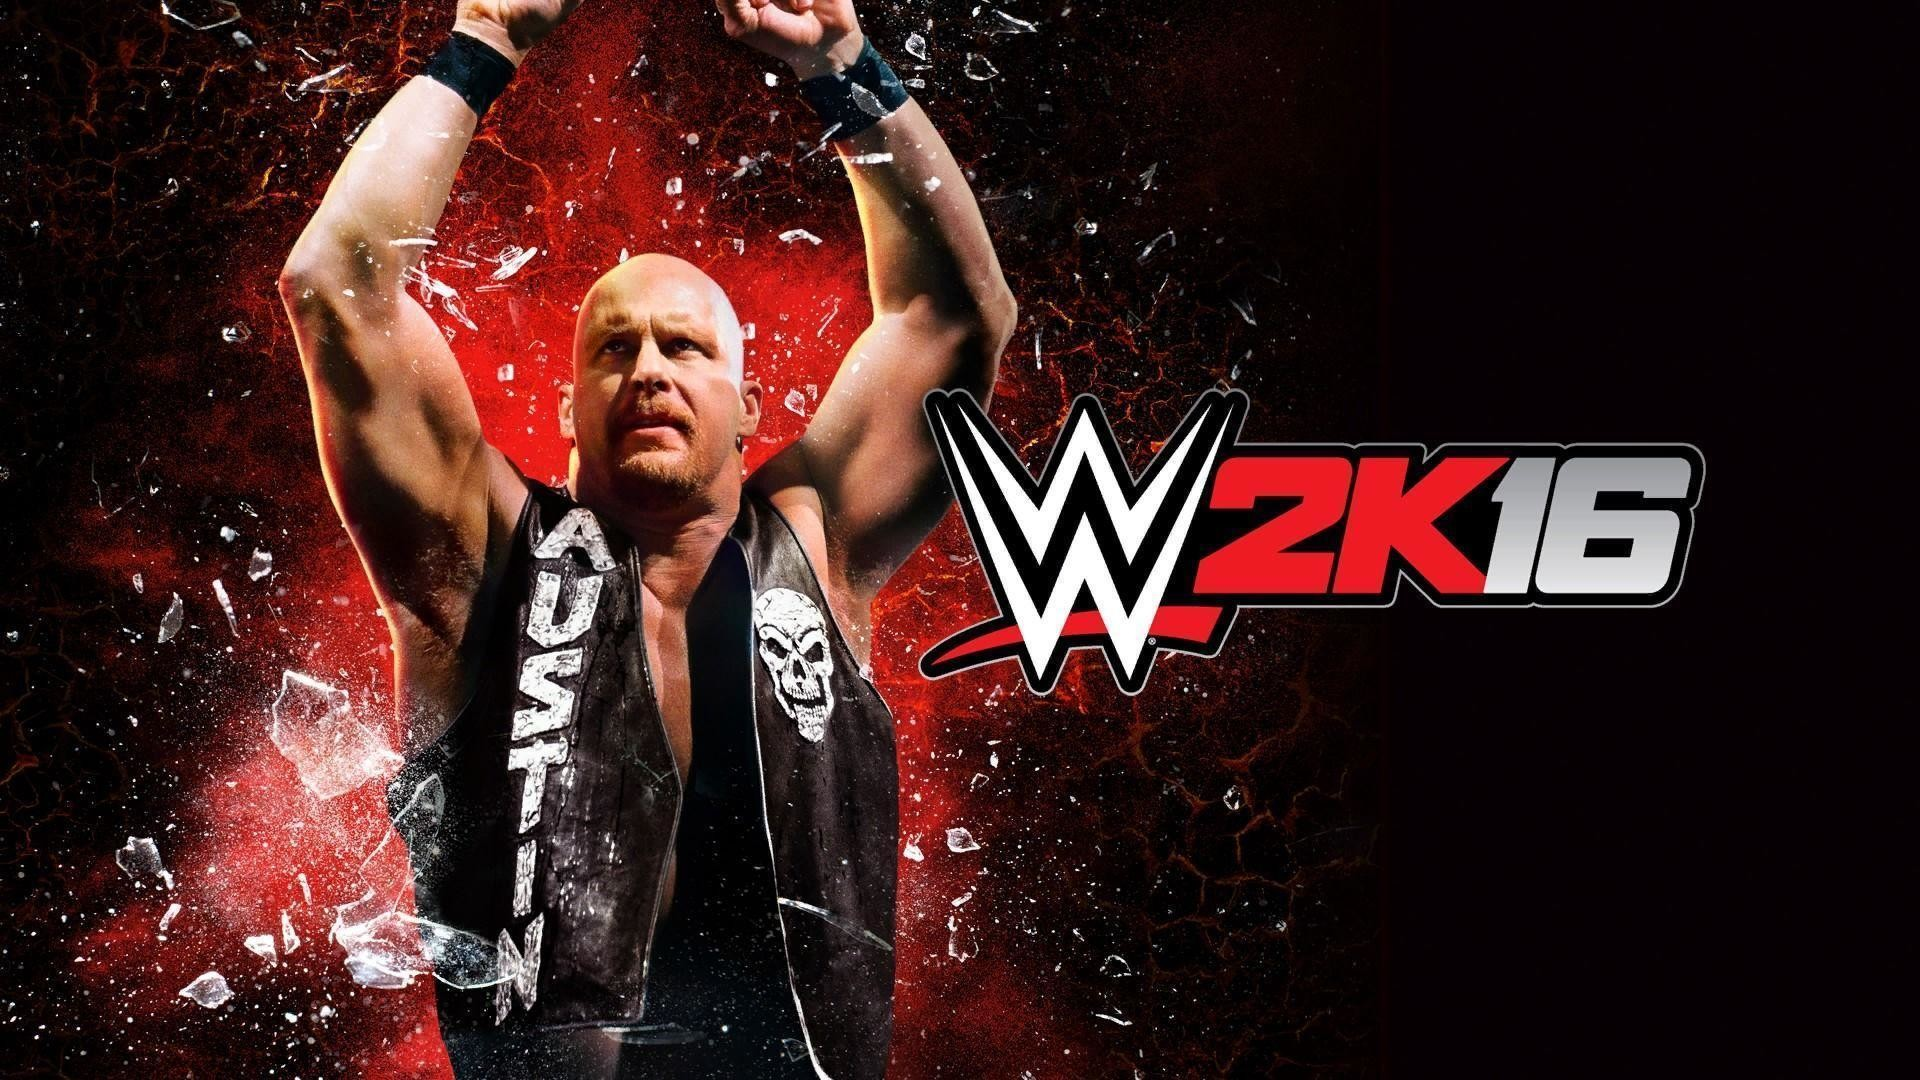 WWE 2K16 Review: 2K's Latest Is The Rest Hold Of Wrestling Games